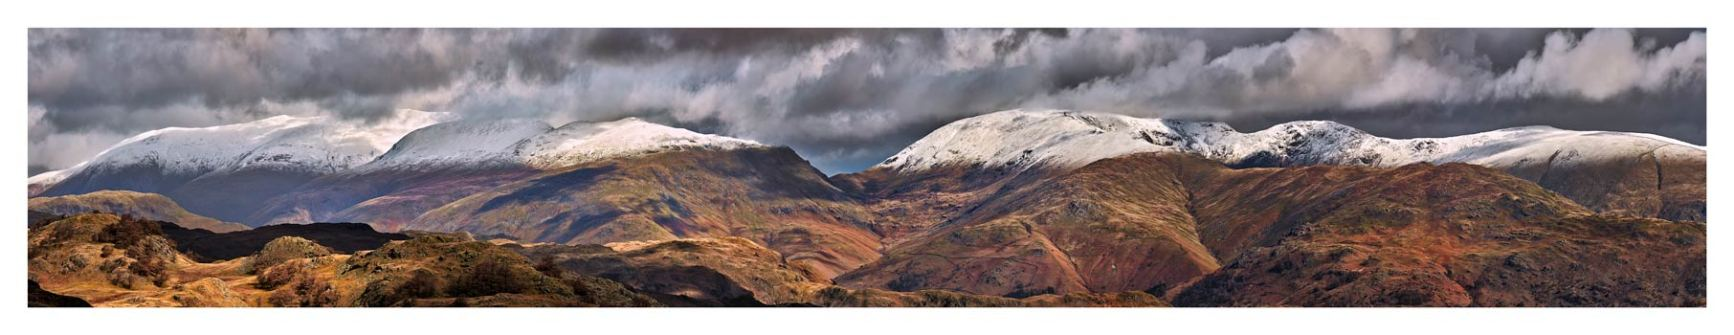 Snow Capped Mountains Panorama - Lake District Print